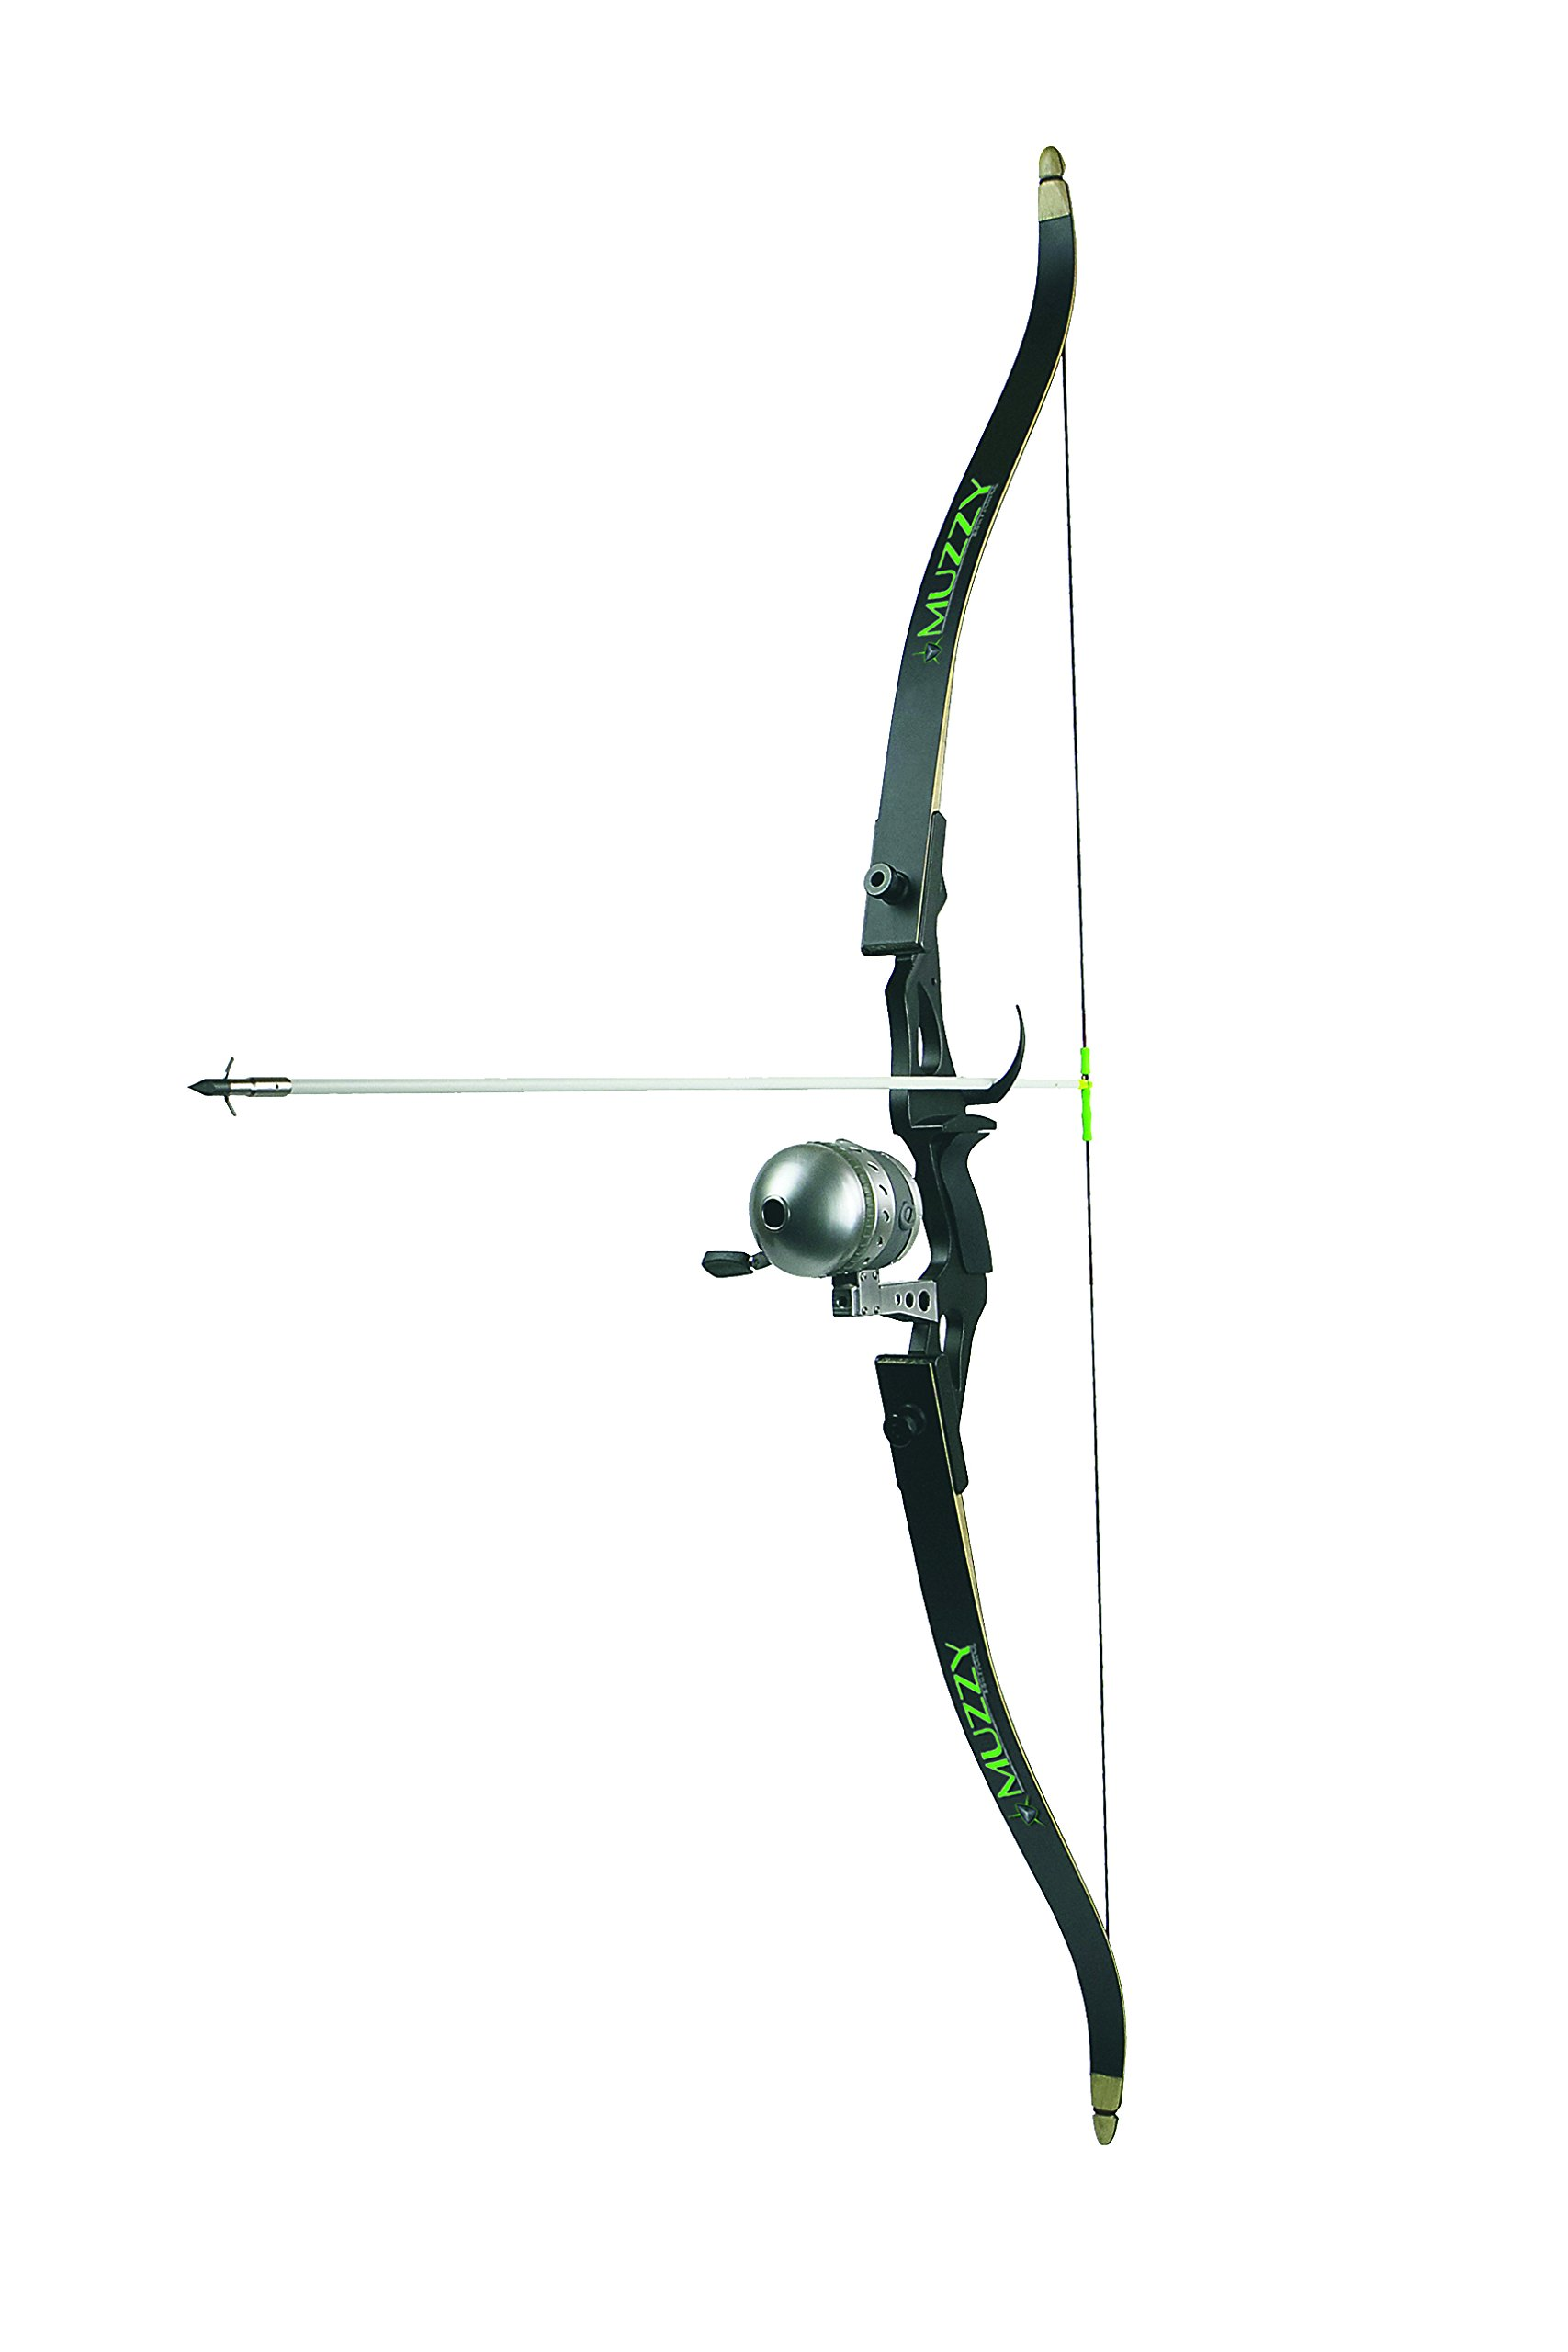 Muzzy 7505 Addict Bowfishing Kit: Recurve Bow, New Reel with 150# line Installed, Rest, 1020-C Arrow,& Finger Guards